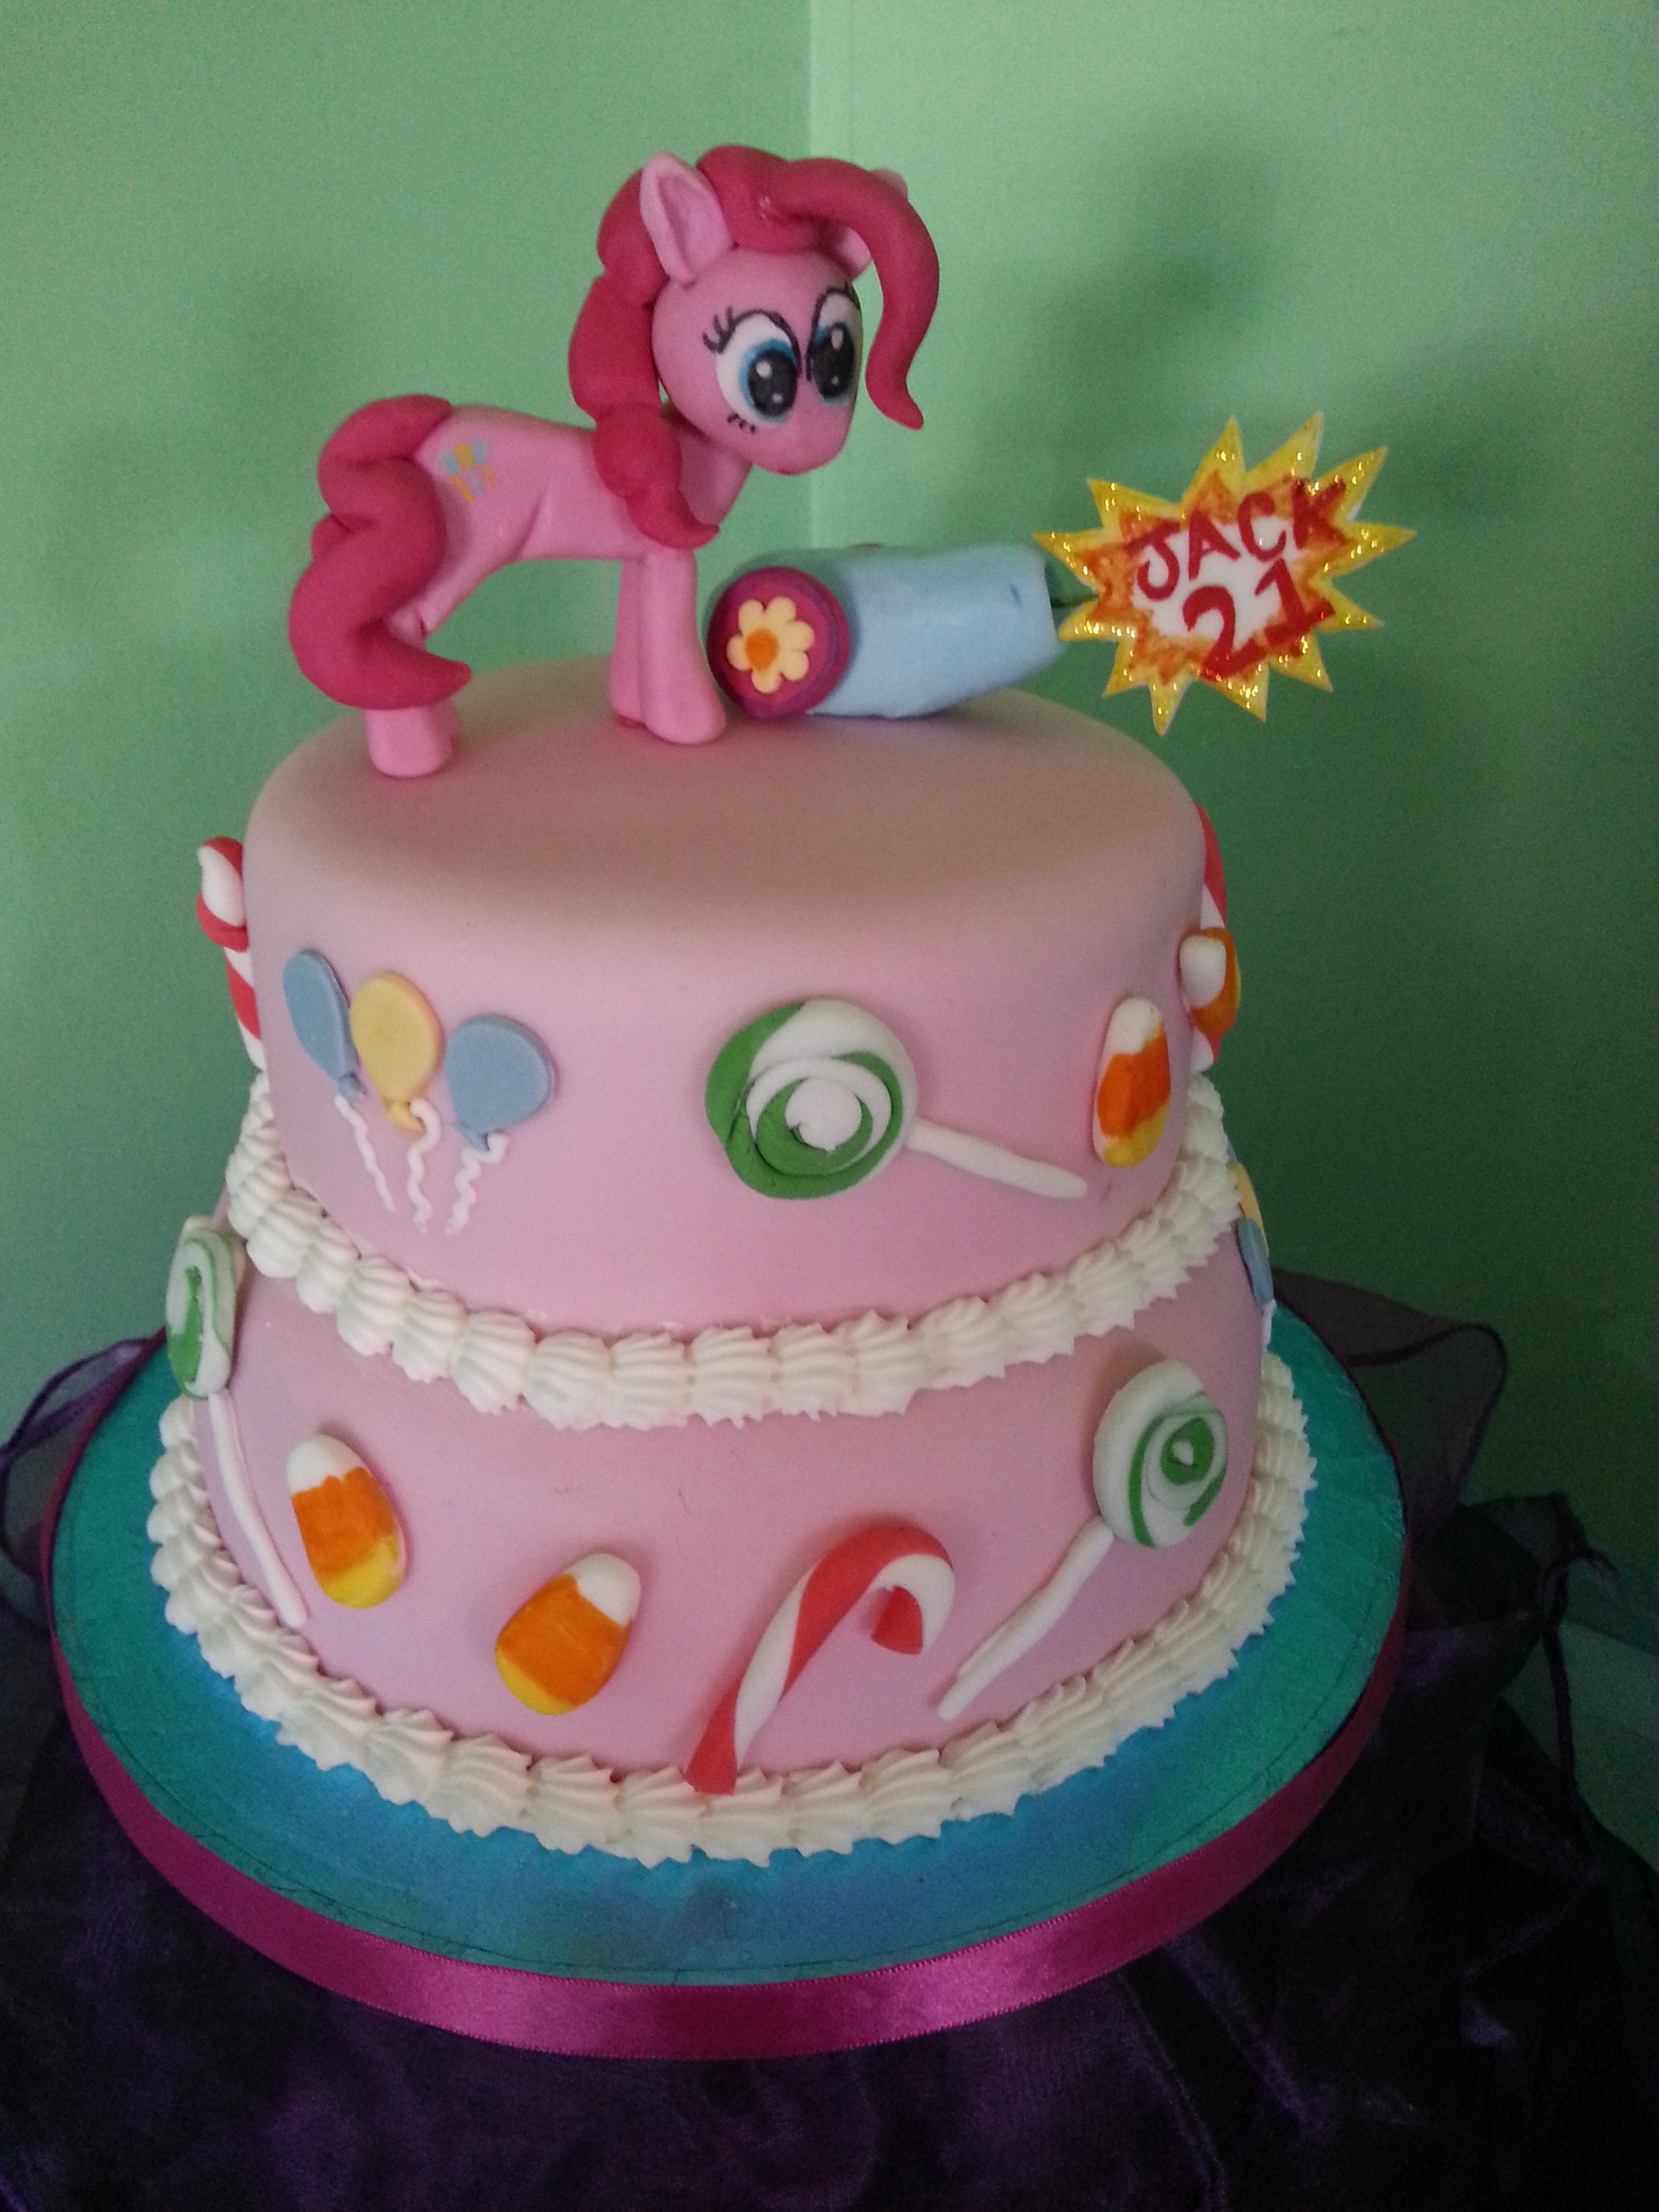 Birthday Cake Images With Name Pinky : Pinkie Pie Cake by SpikesMustache on DeviantArt